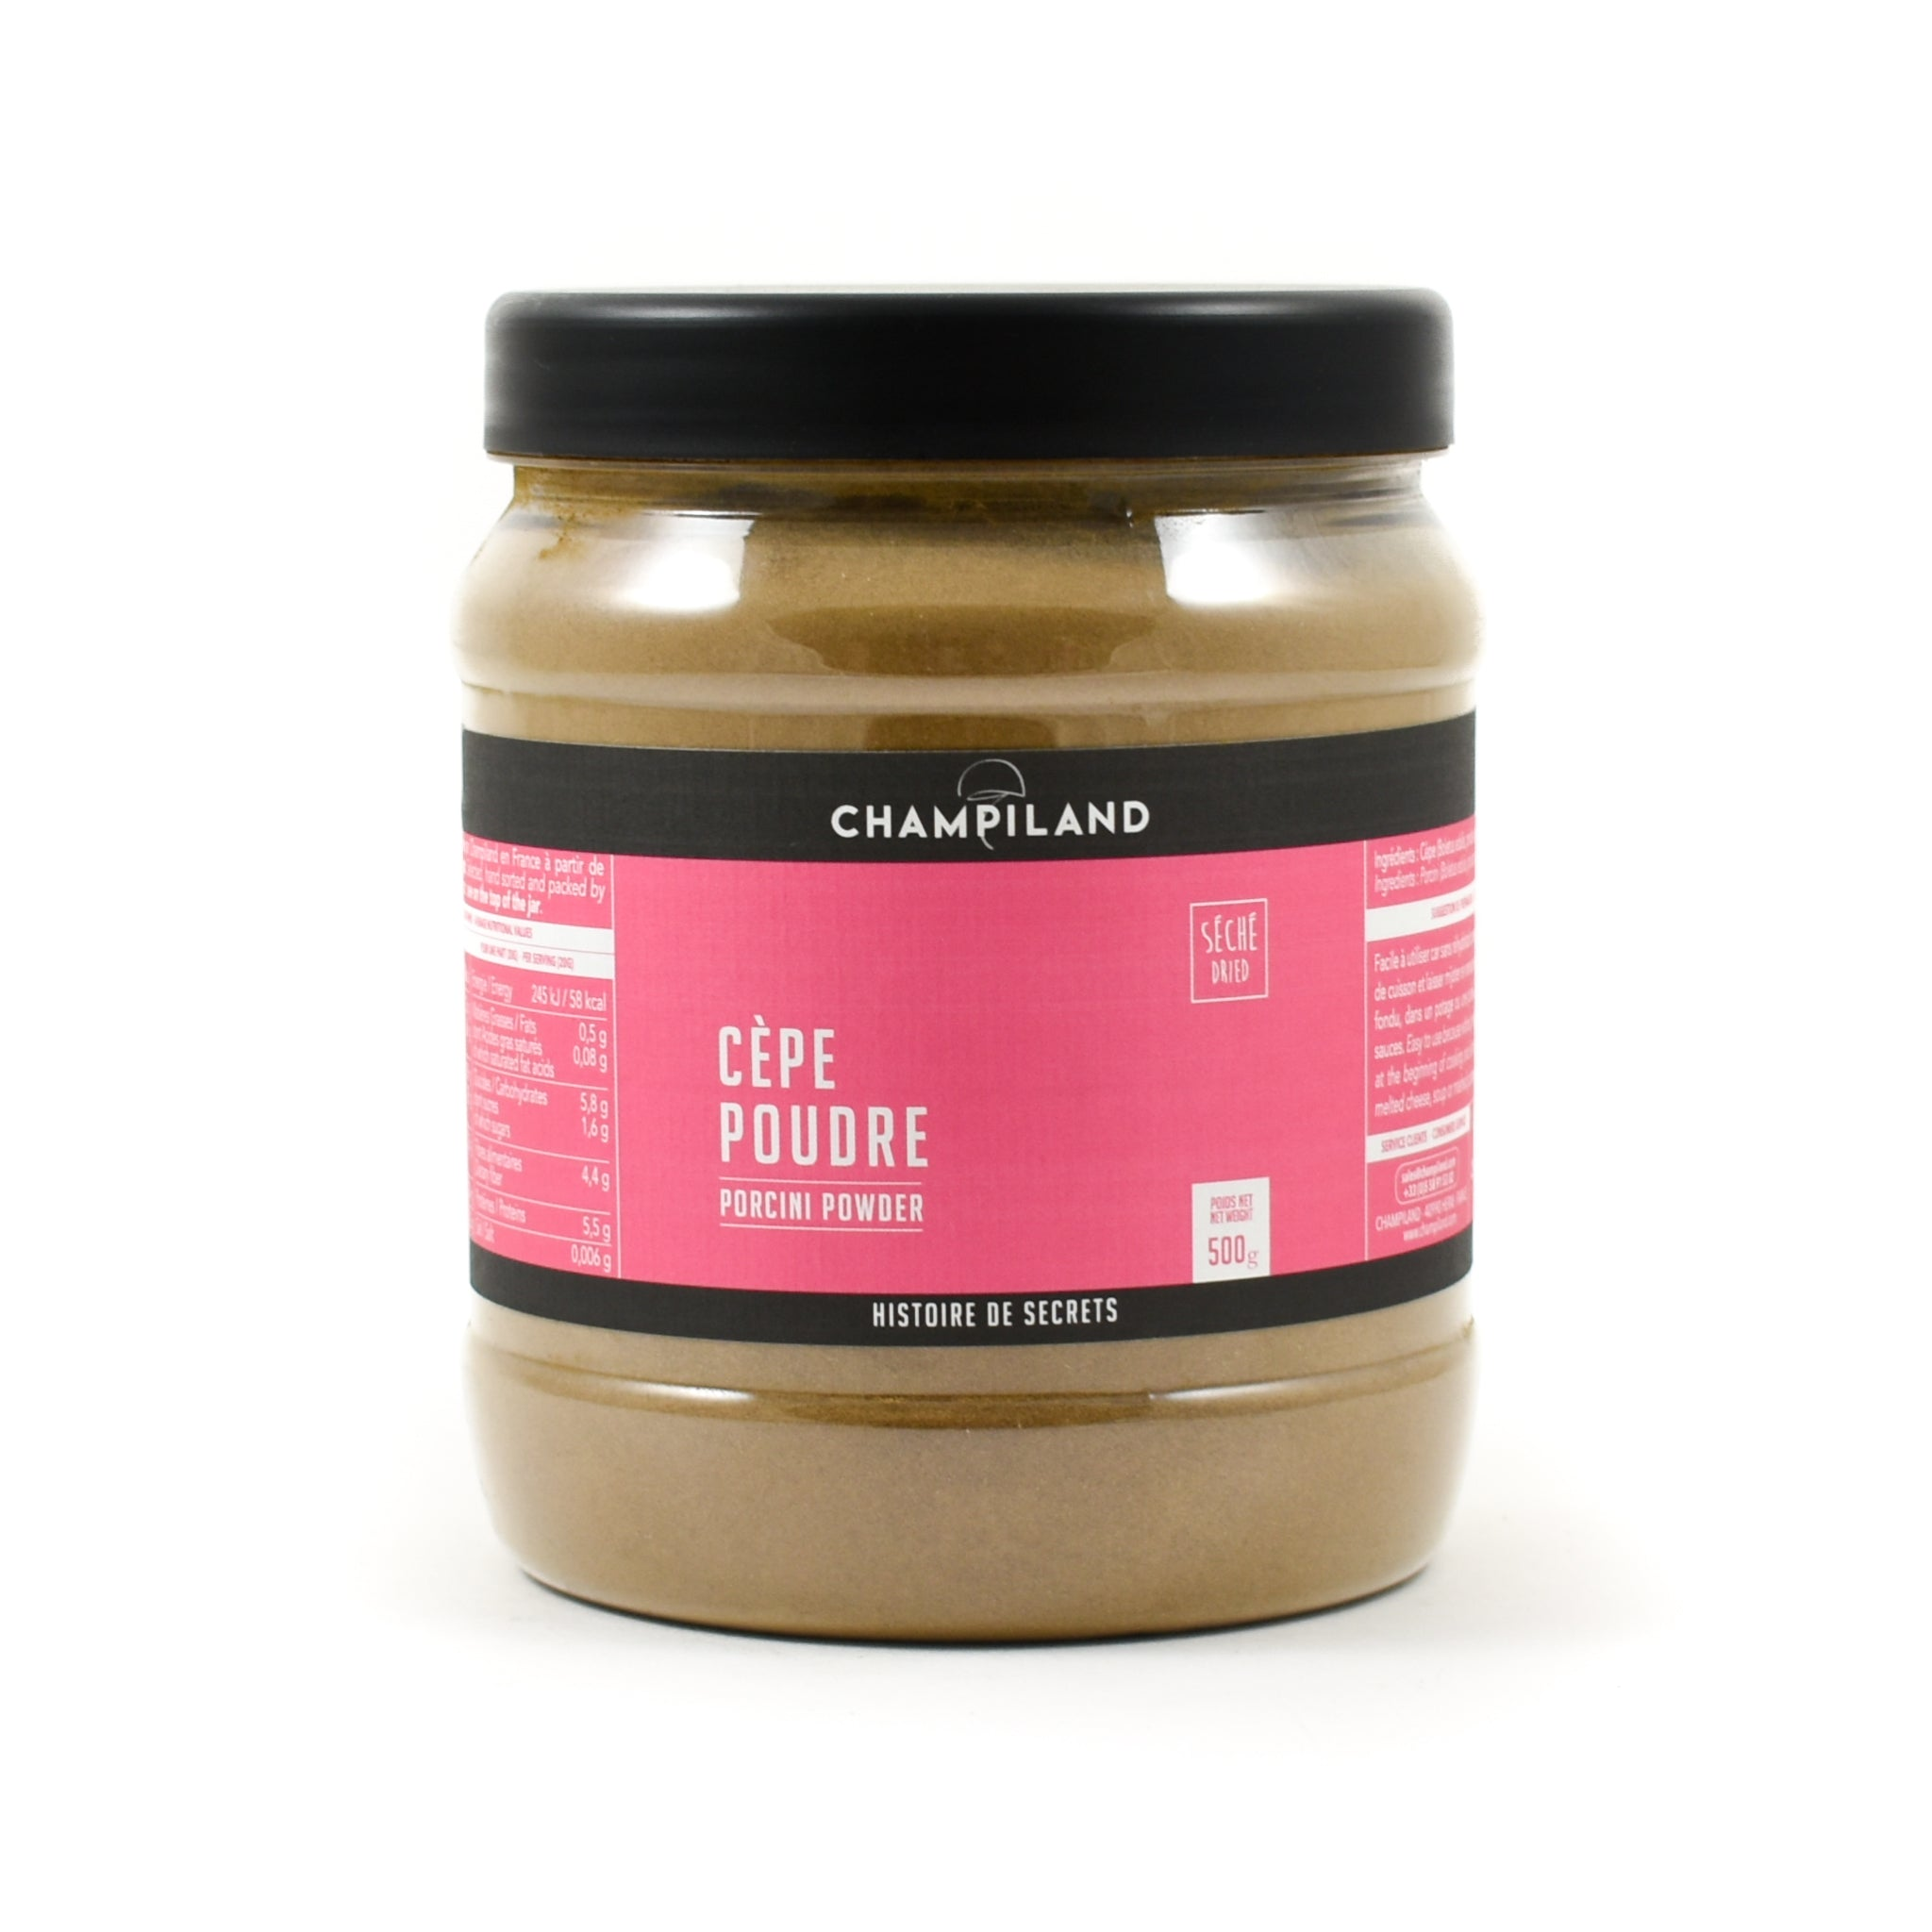 Champiland Cep Powder 500g Ingredients Mushrooms & Truffles